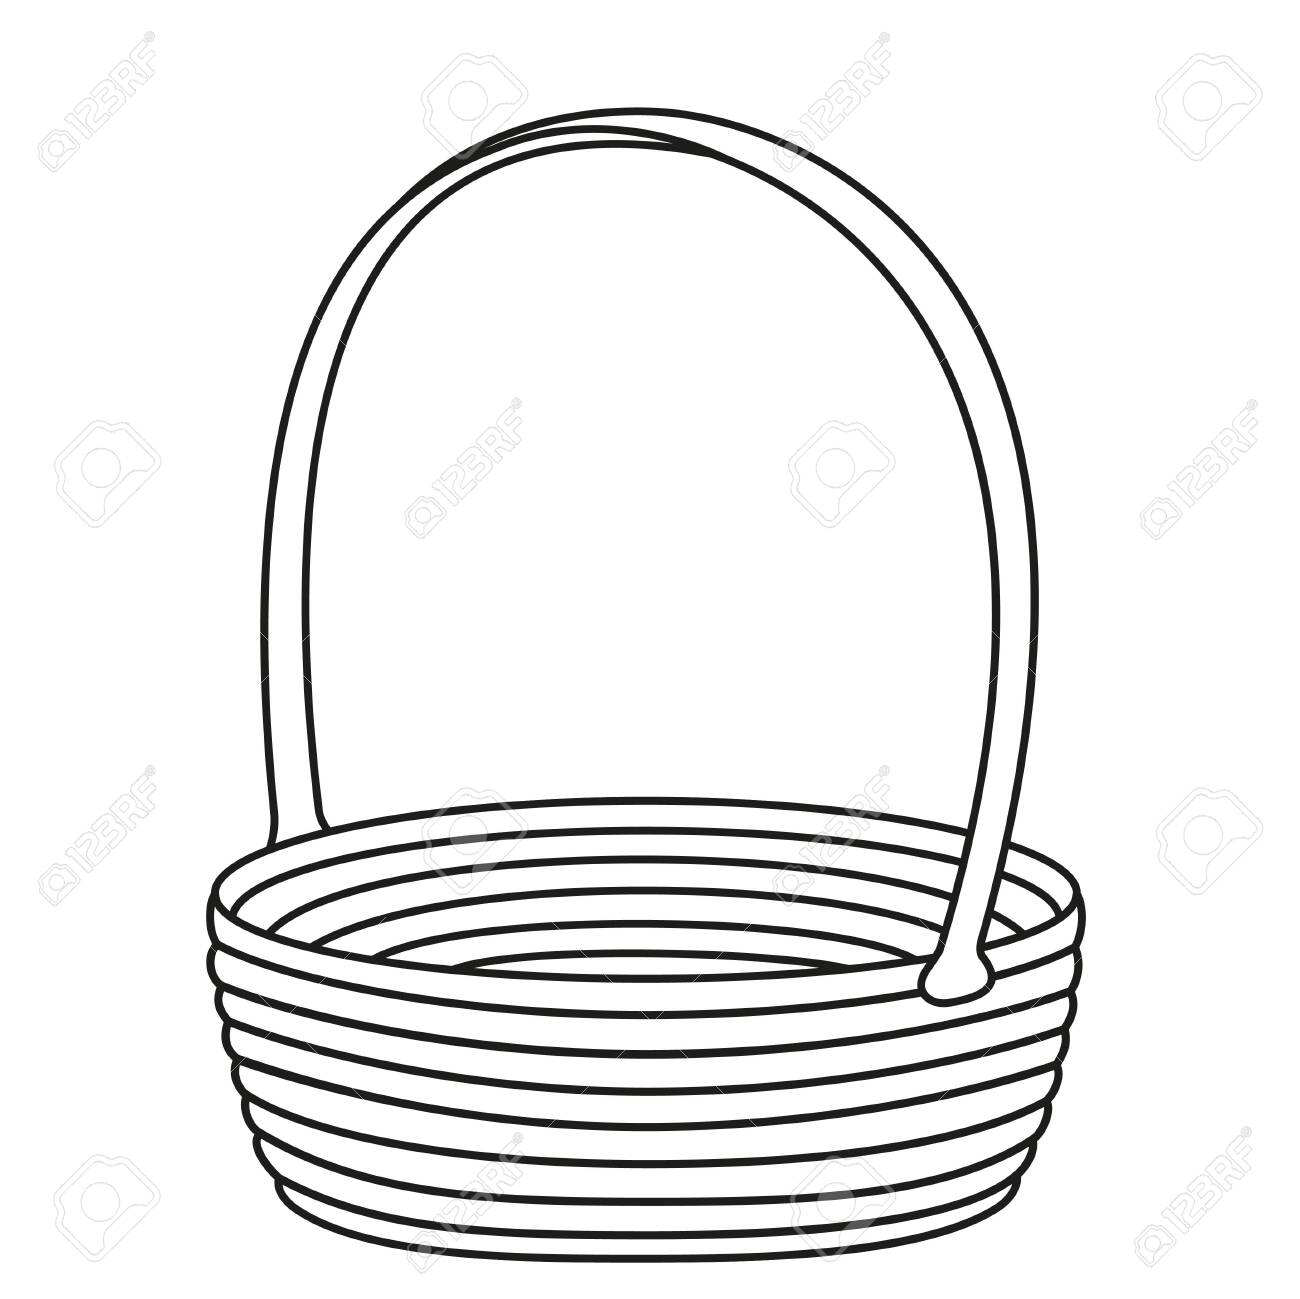 Line art black and white empty wicker basket. Farm eco bag. Easter themed vector illustration for icon, stamp, label, certificate, brochure, gift card, poster, coupon or banner decoration - 124250741